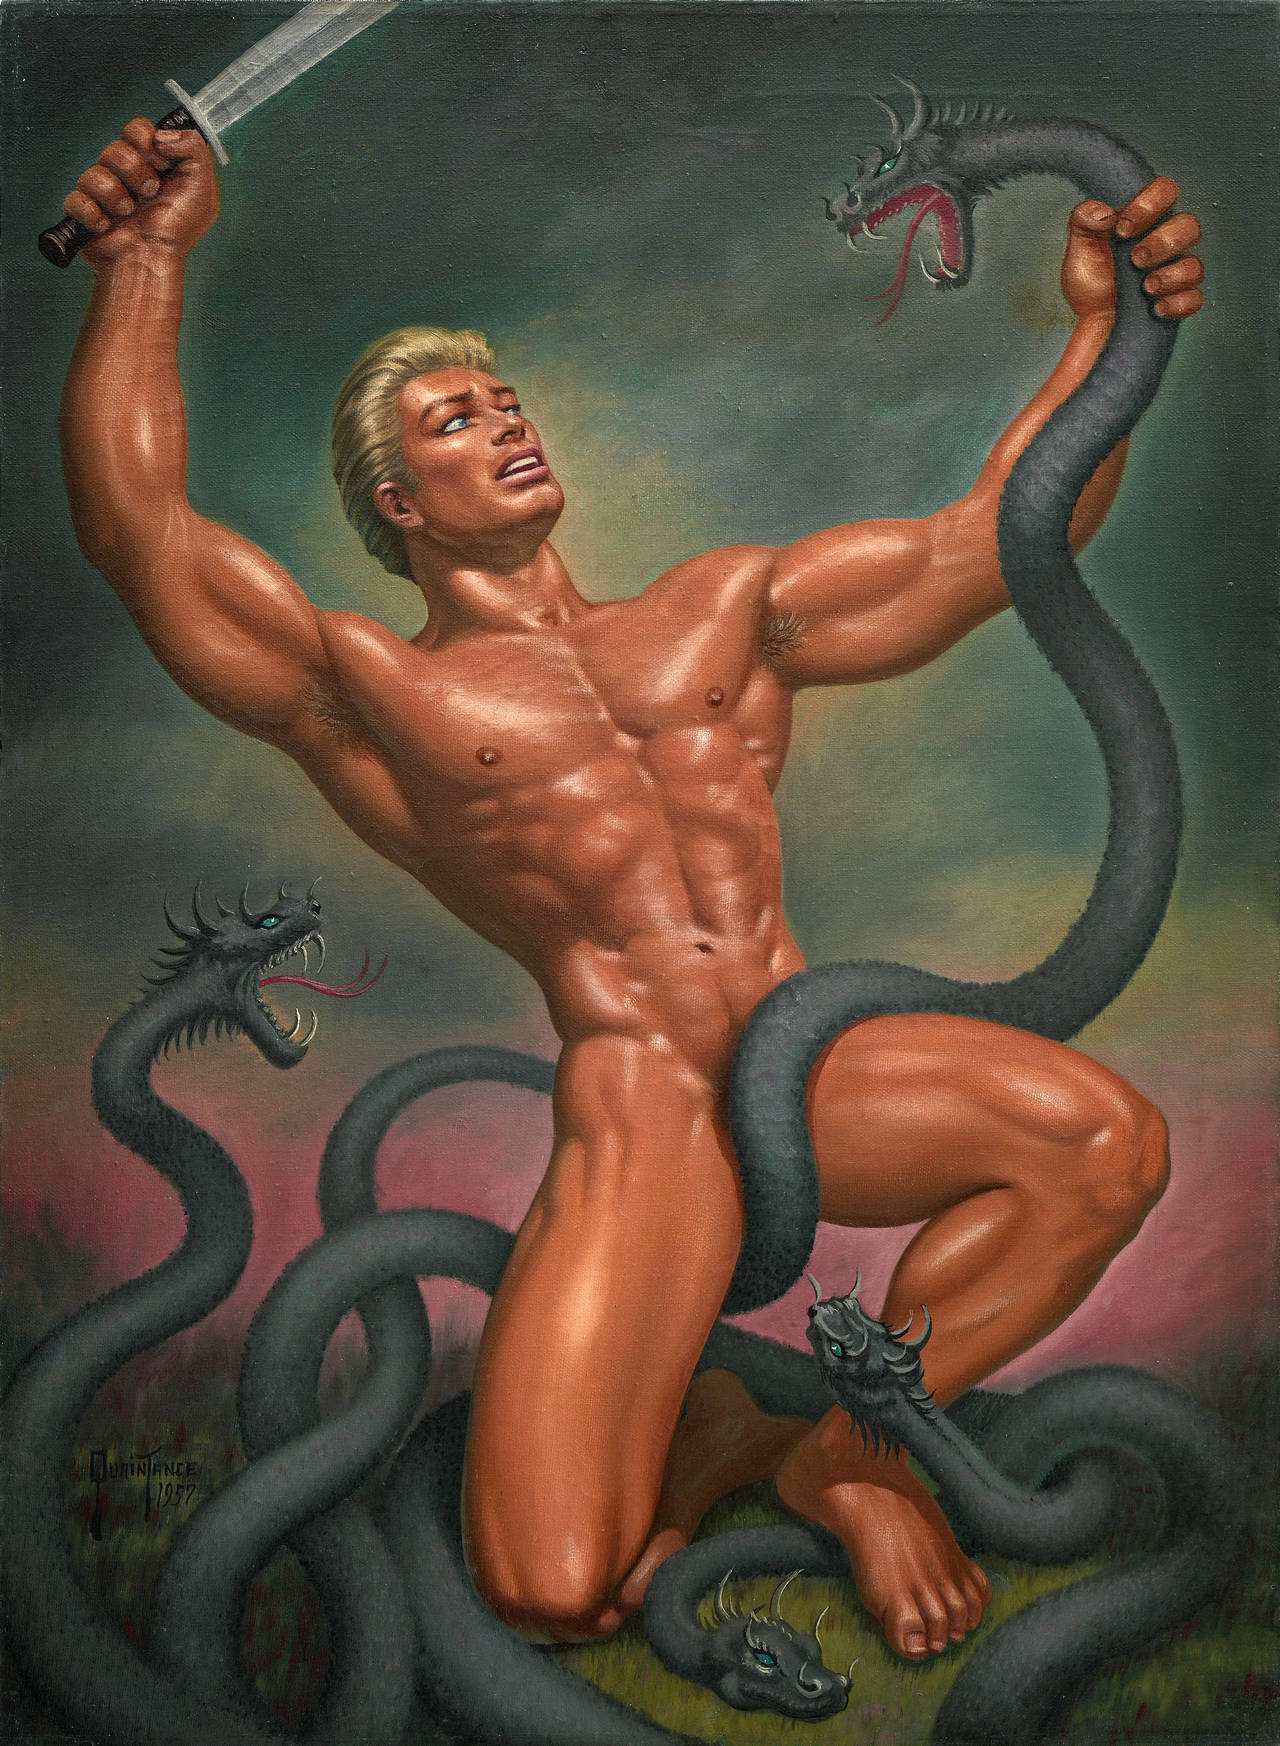 Barbarian gay art erotic image